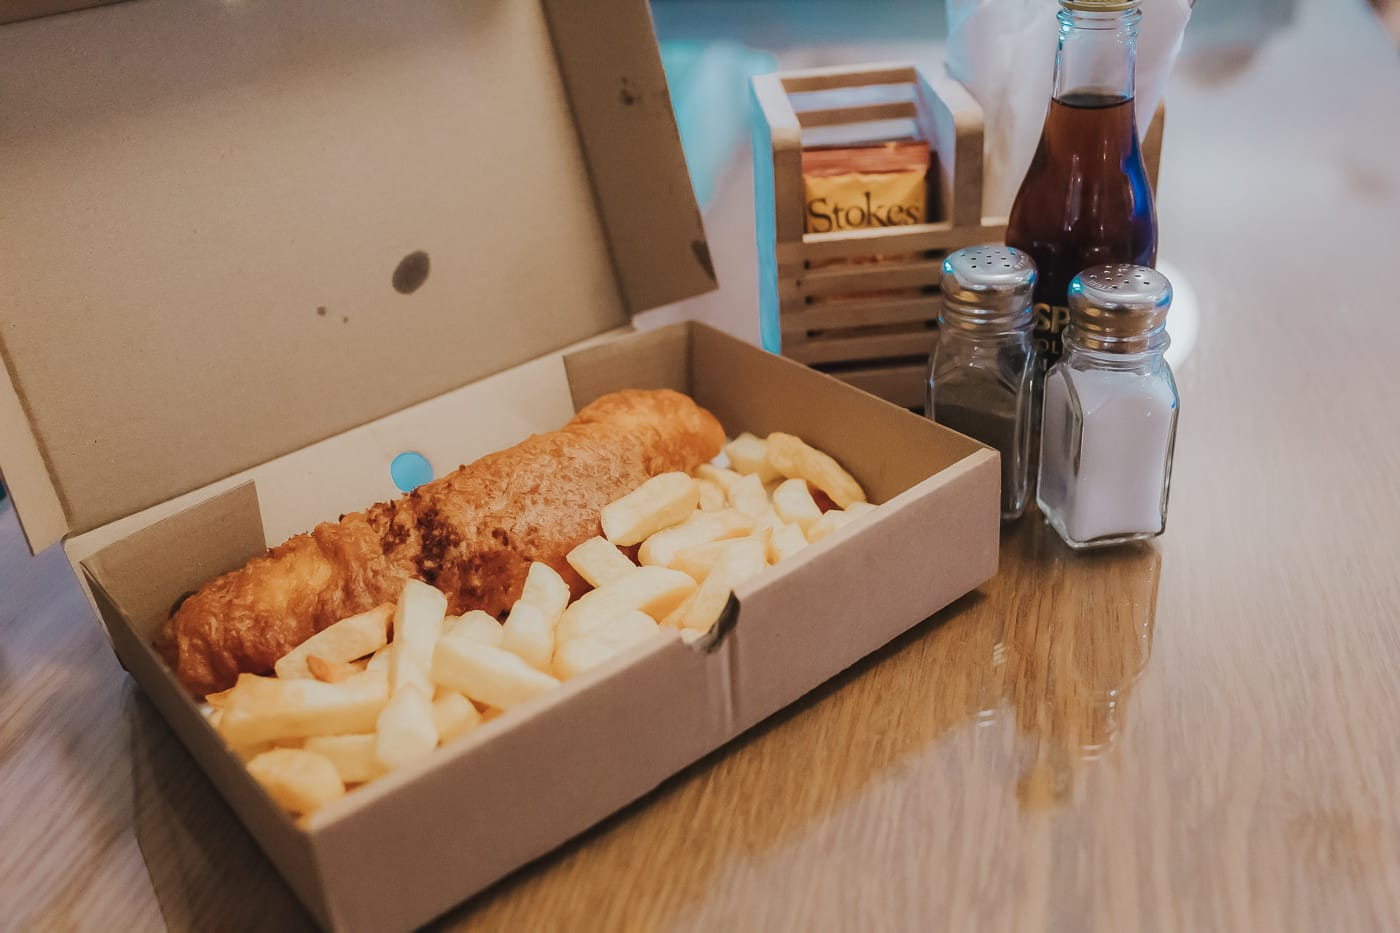 A portion of fish and chips in a takeaway box